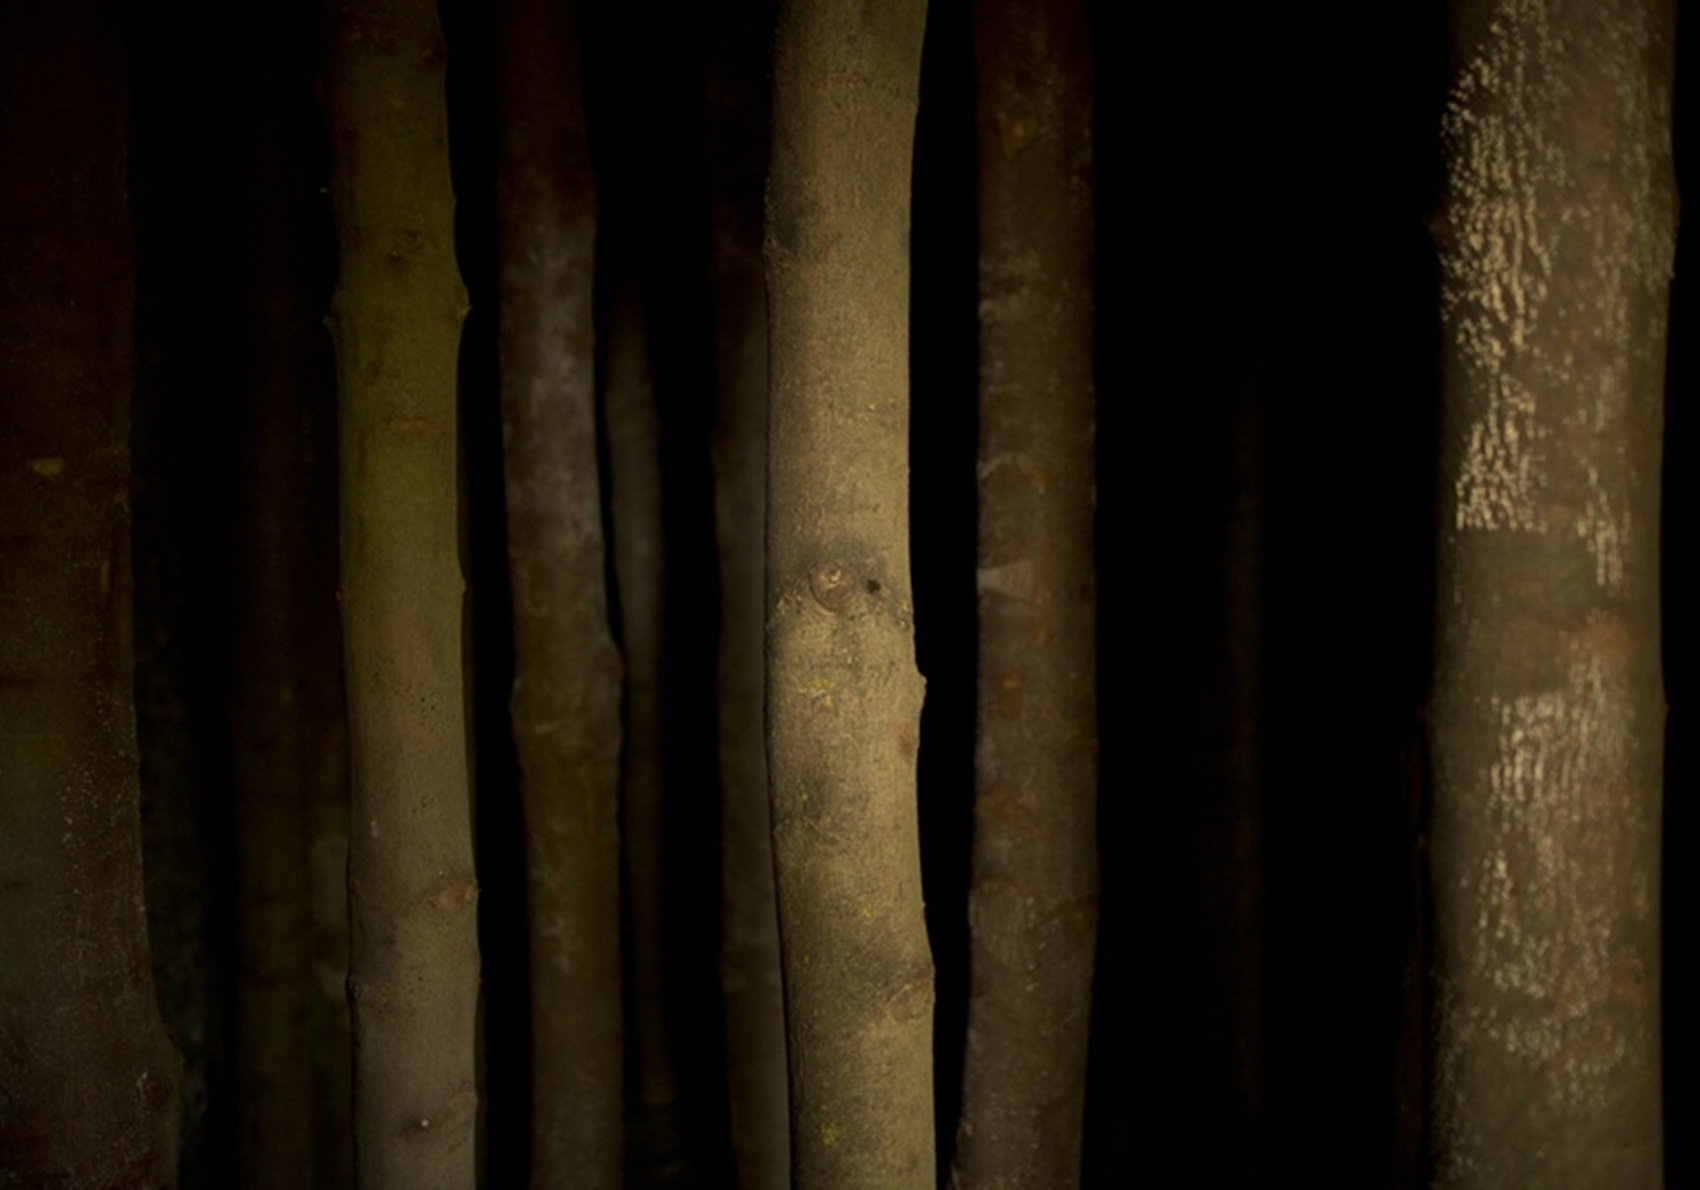 Andy Goldsworthy: Coppice Room